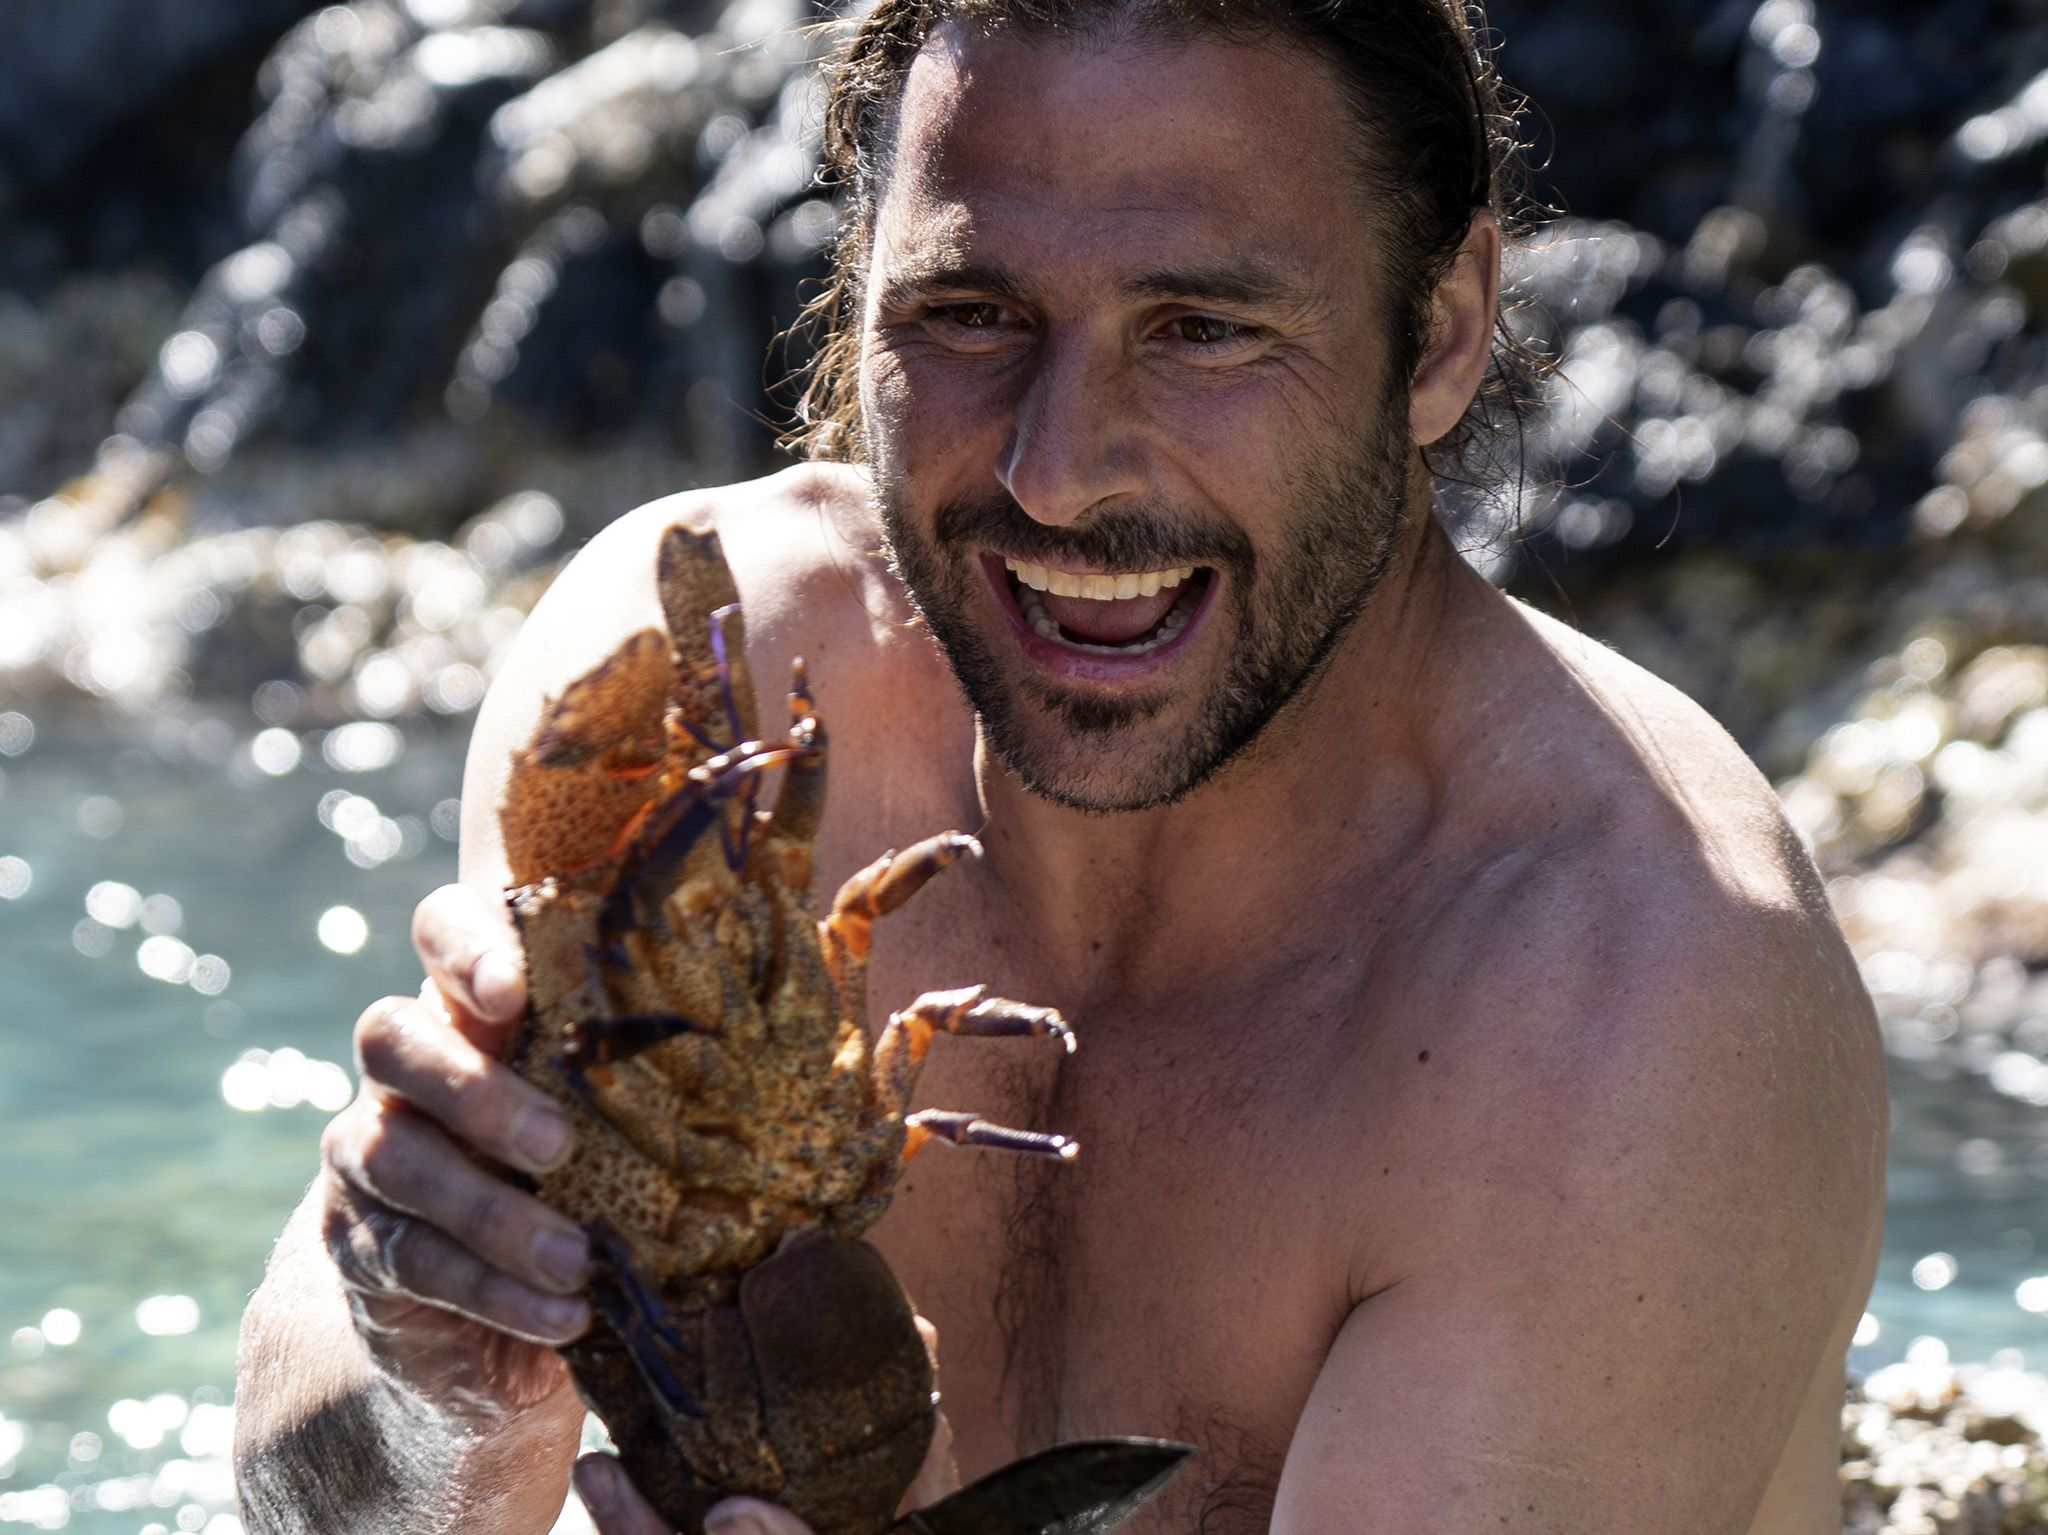 Hazen Audel holds a lobster he caught by hand in the sea. This image is from Ultimate Survival WWII. [Photo of the day - November 2019]